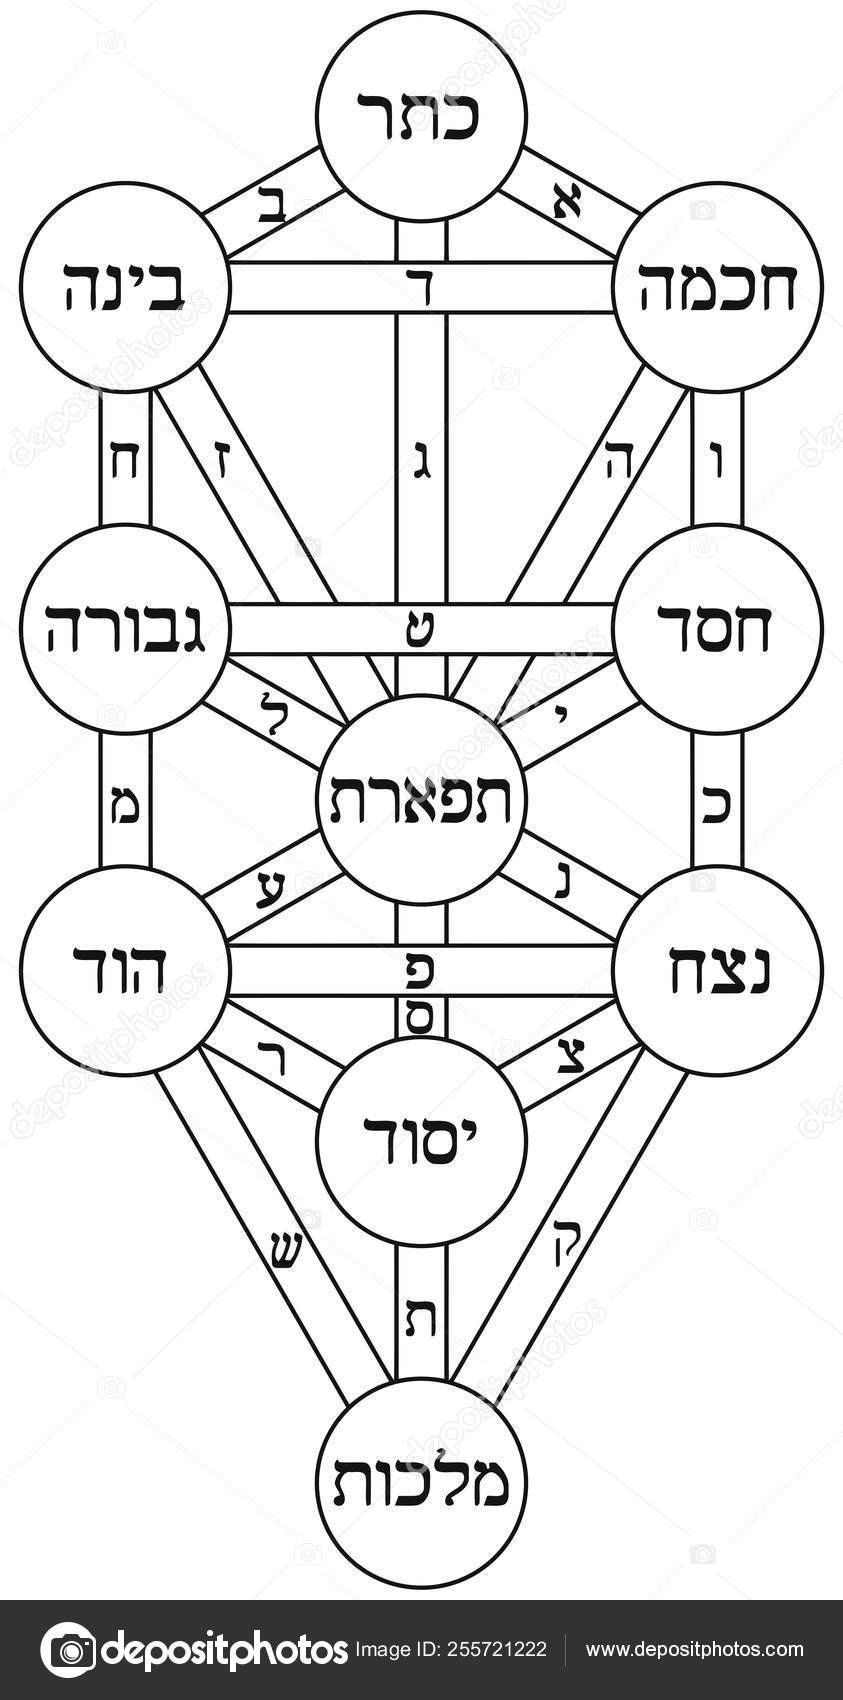 Tree Of Life From Kabbalah : Its basic design is based on descriptions given in the sefer yetsirah, or book of creation, and since man is invested with mind, consciousness in the kabbalah is thought of as the fruit of the physical world, through whom the original infinite energy can.